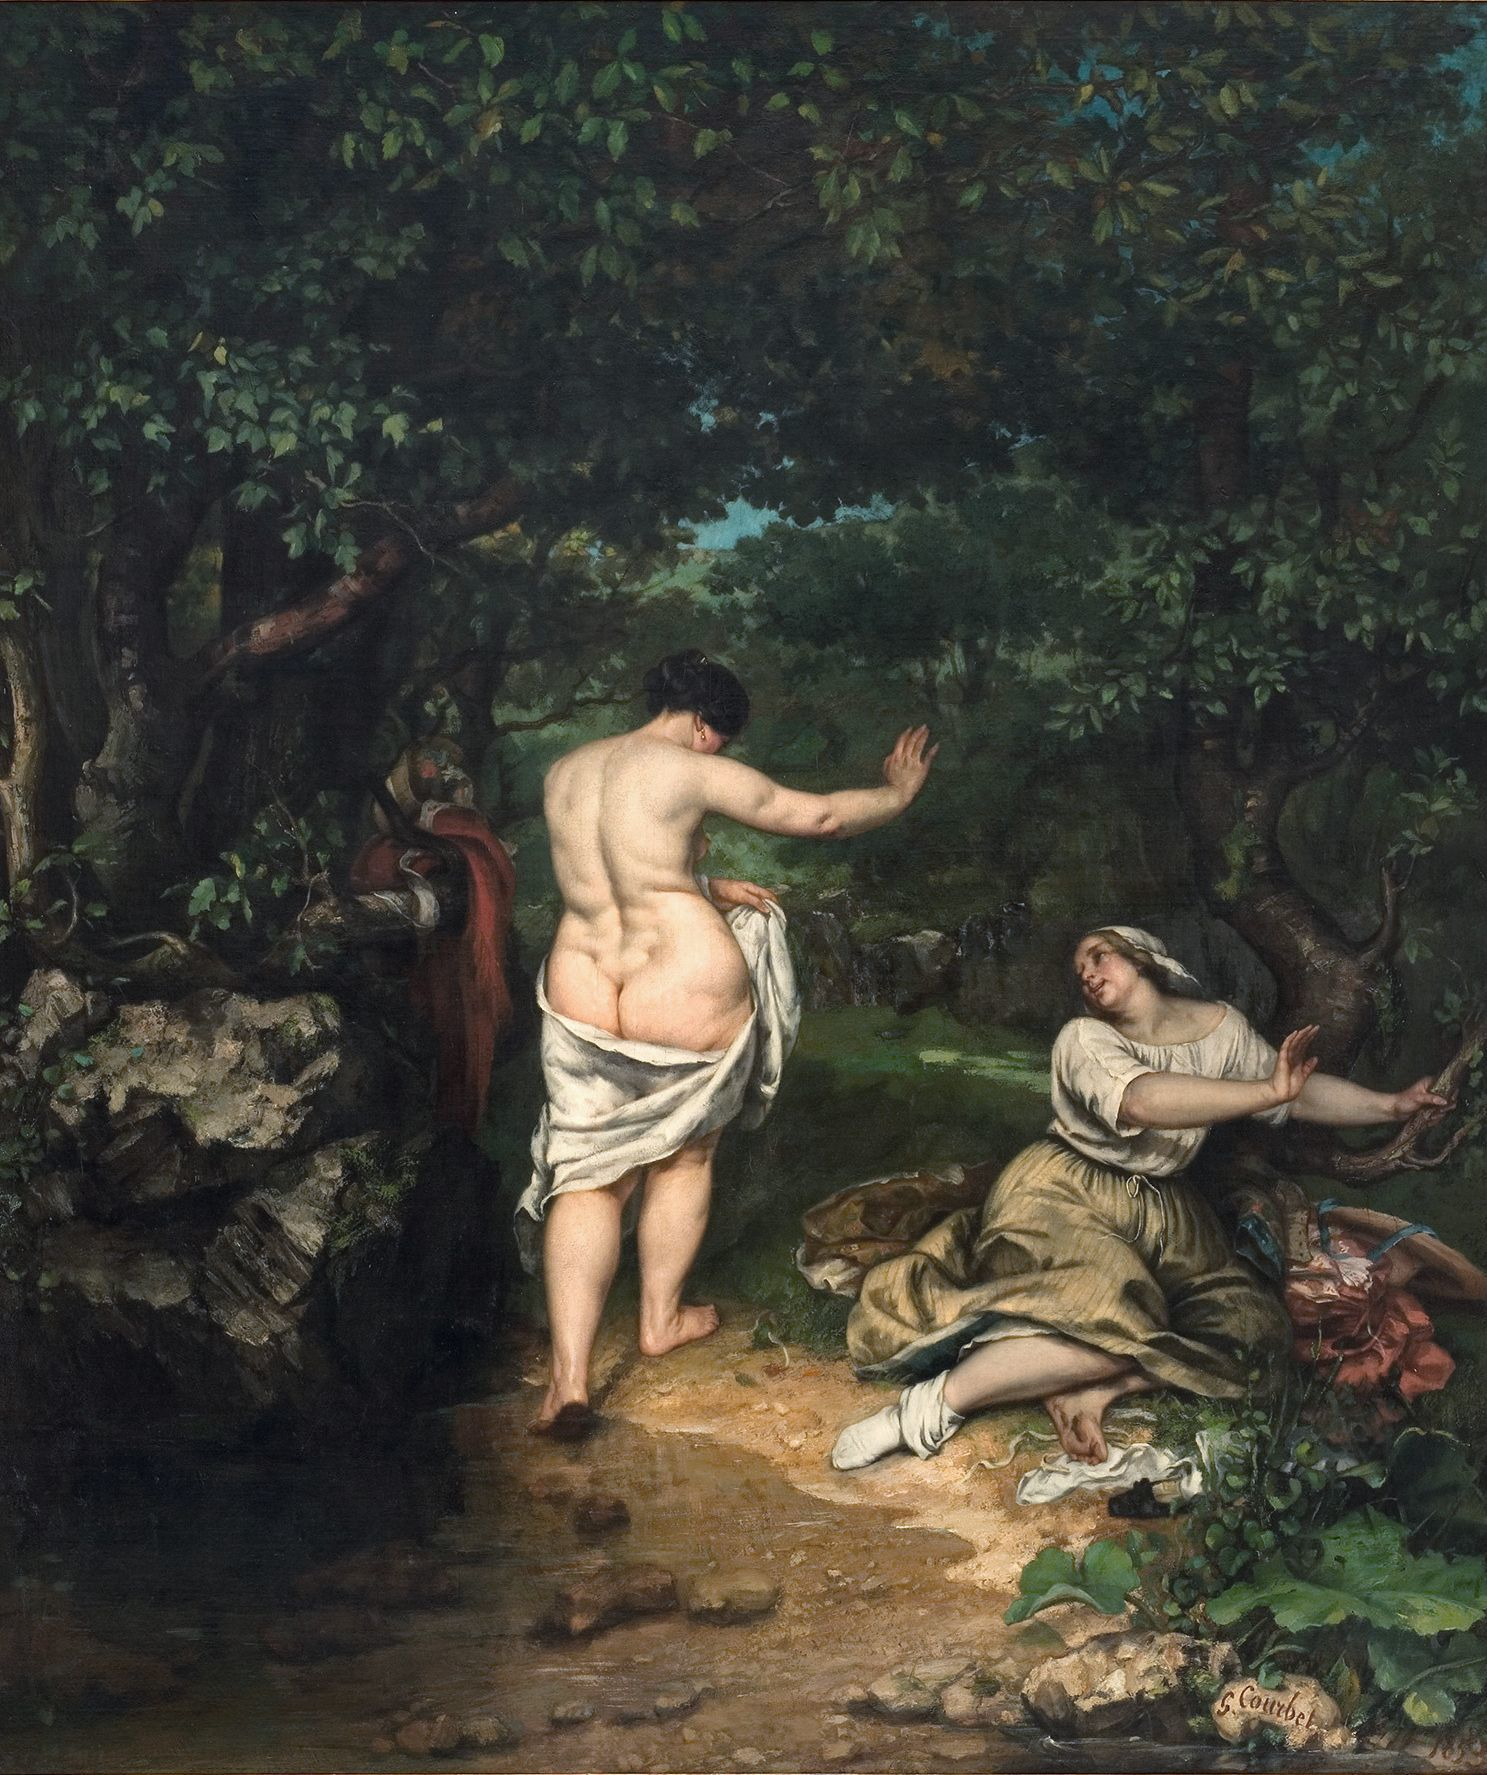 Gustave Courbet, Les Baigneuses, 1853